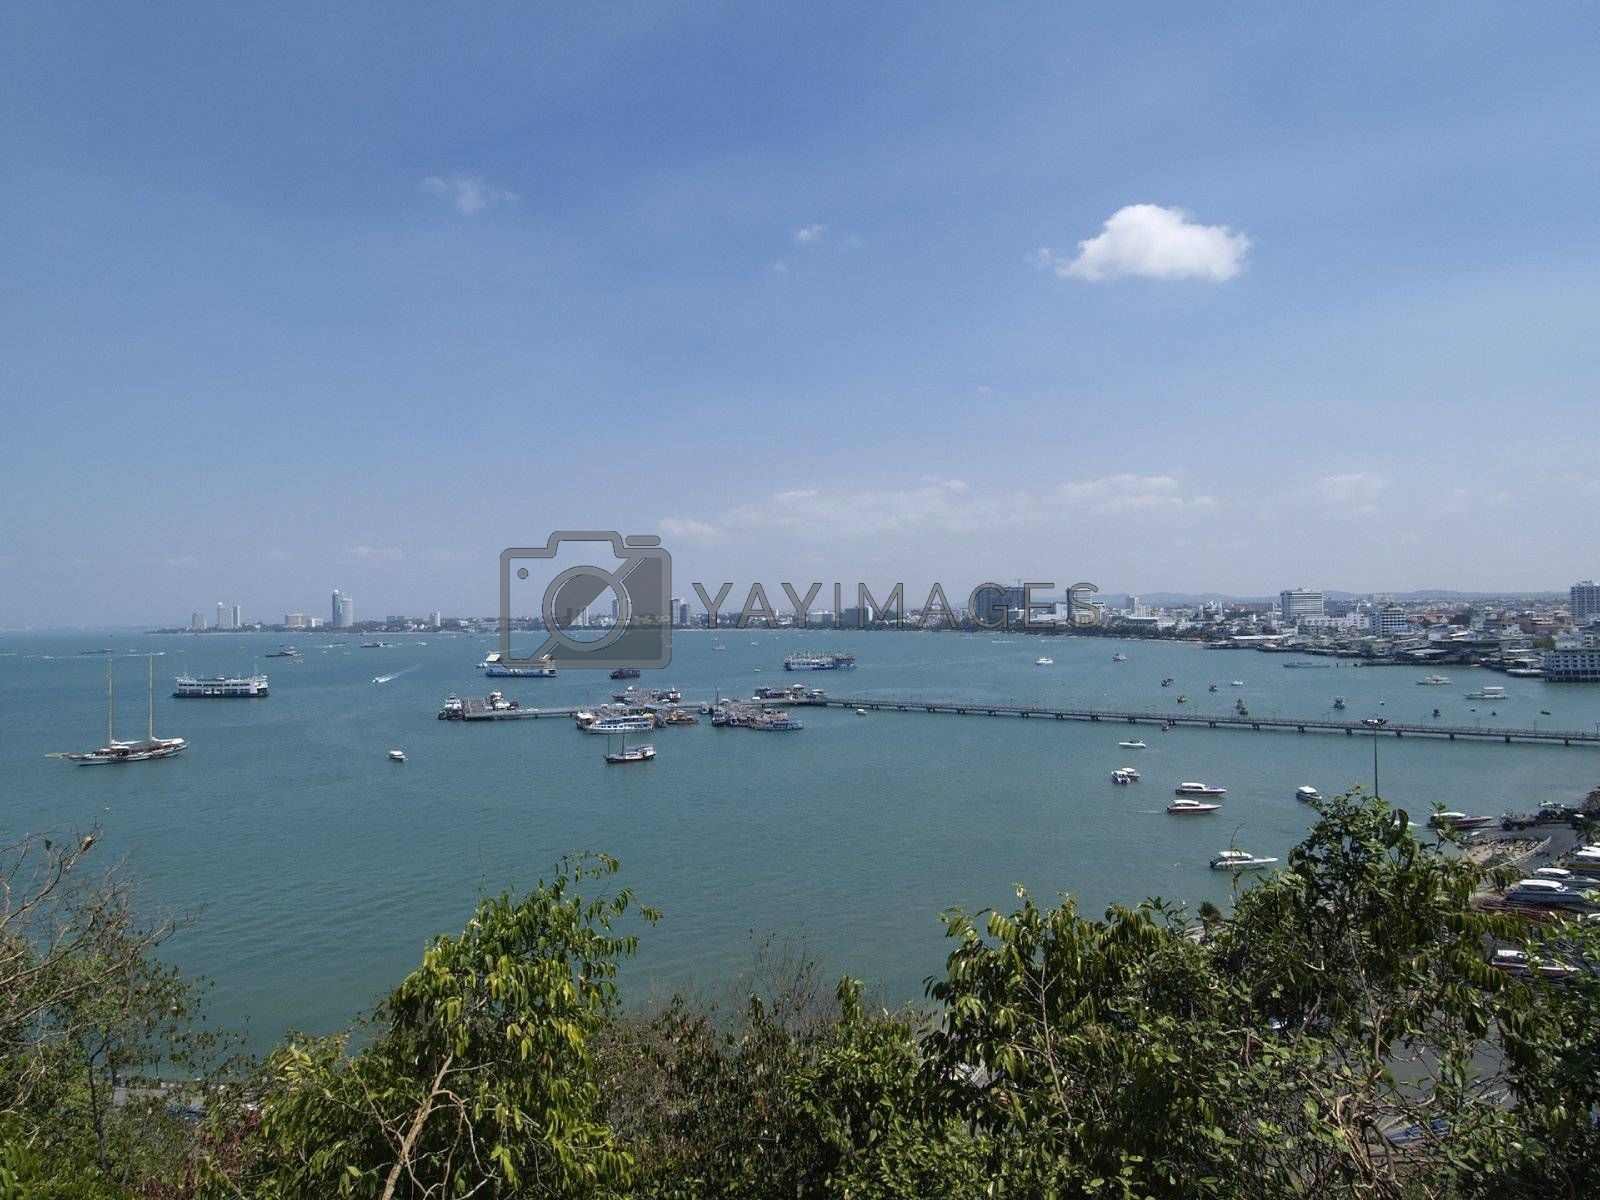 Pattaya City panorama by epixx